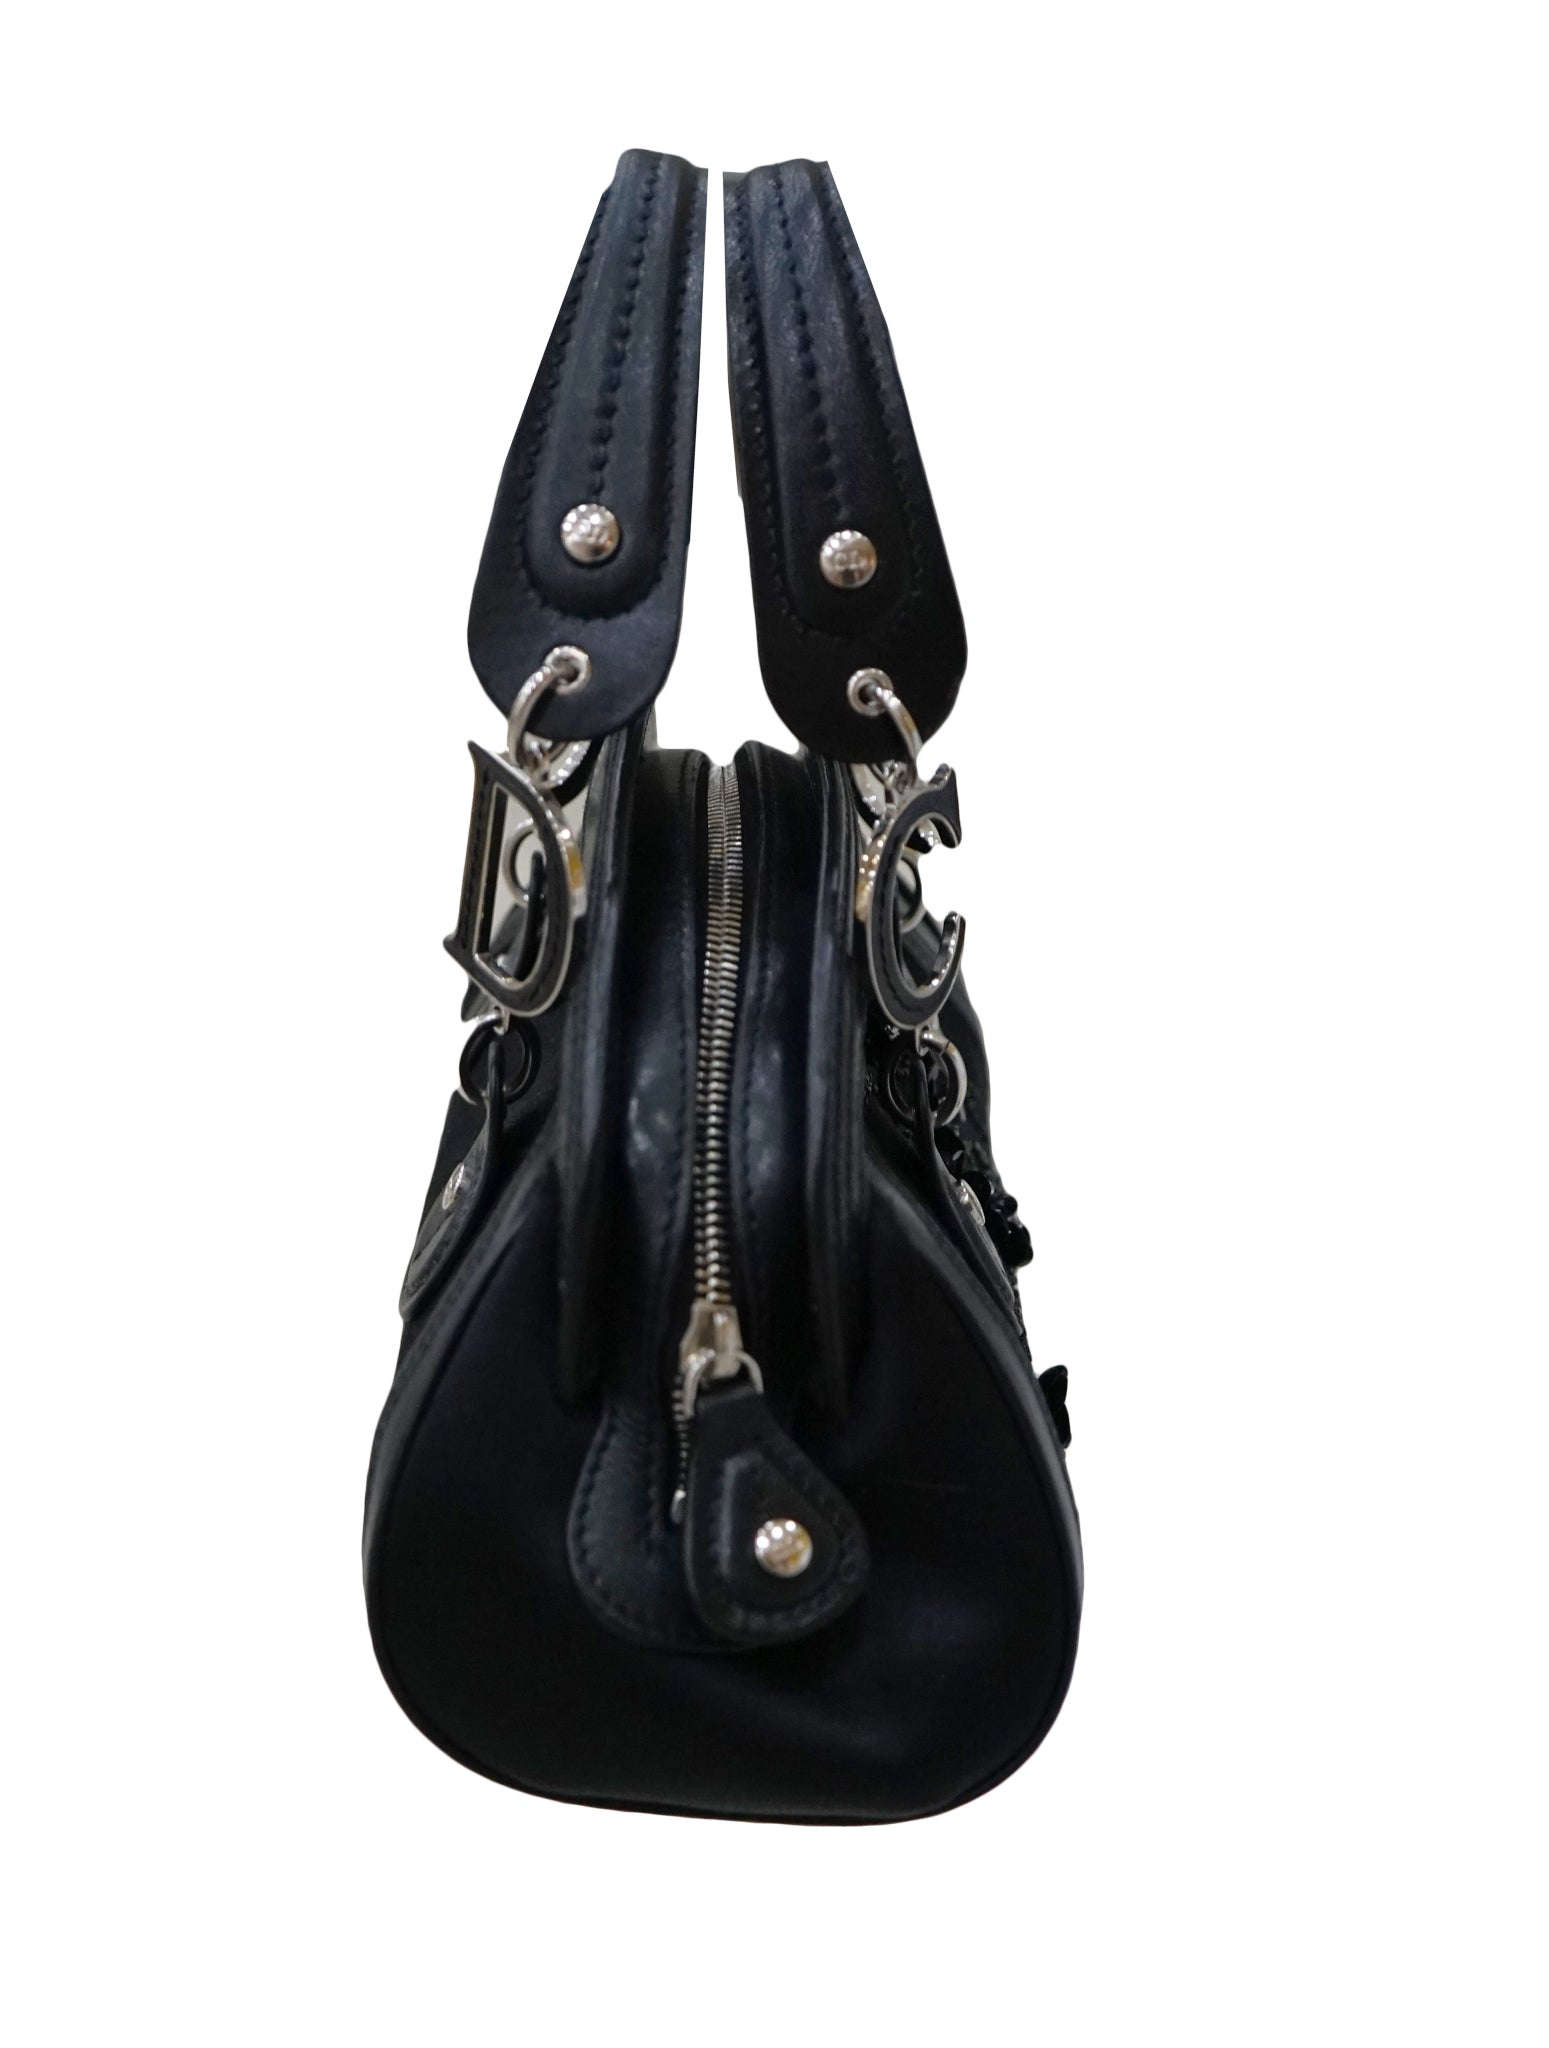 SATIN EMBELLISHED TROTTER TOTE BAG